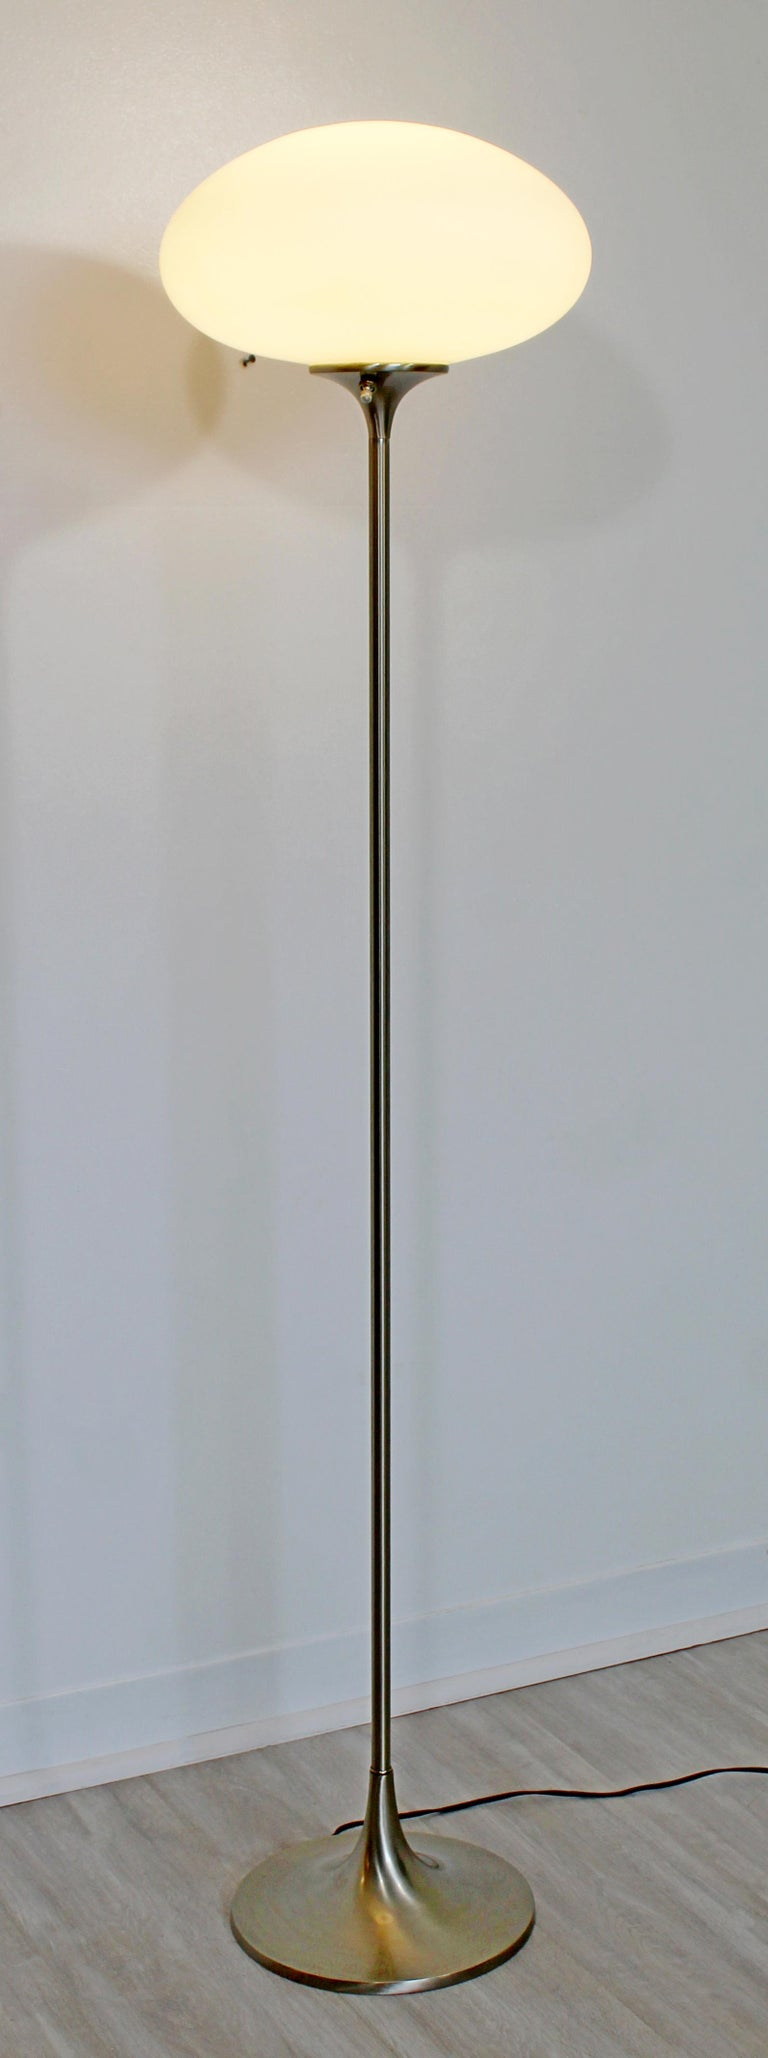 For your consideration is a wonderful, white glass and brushed steel, mushroom style floor lamp, by the Laurel Lamp Co., circa 1970s. In excellent condition. The dimensions are 12